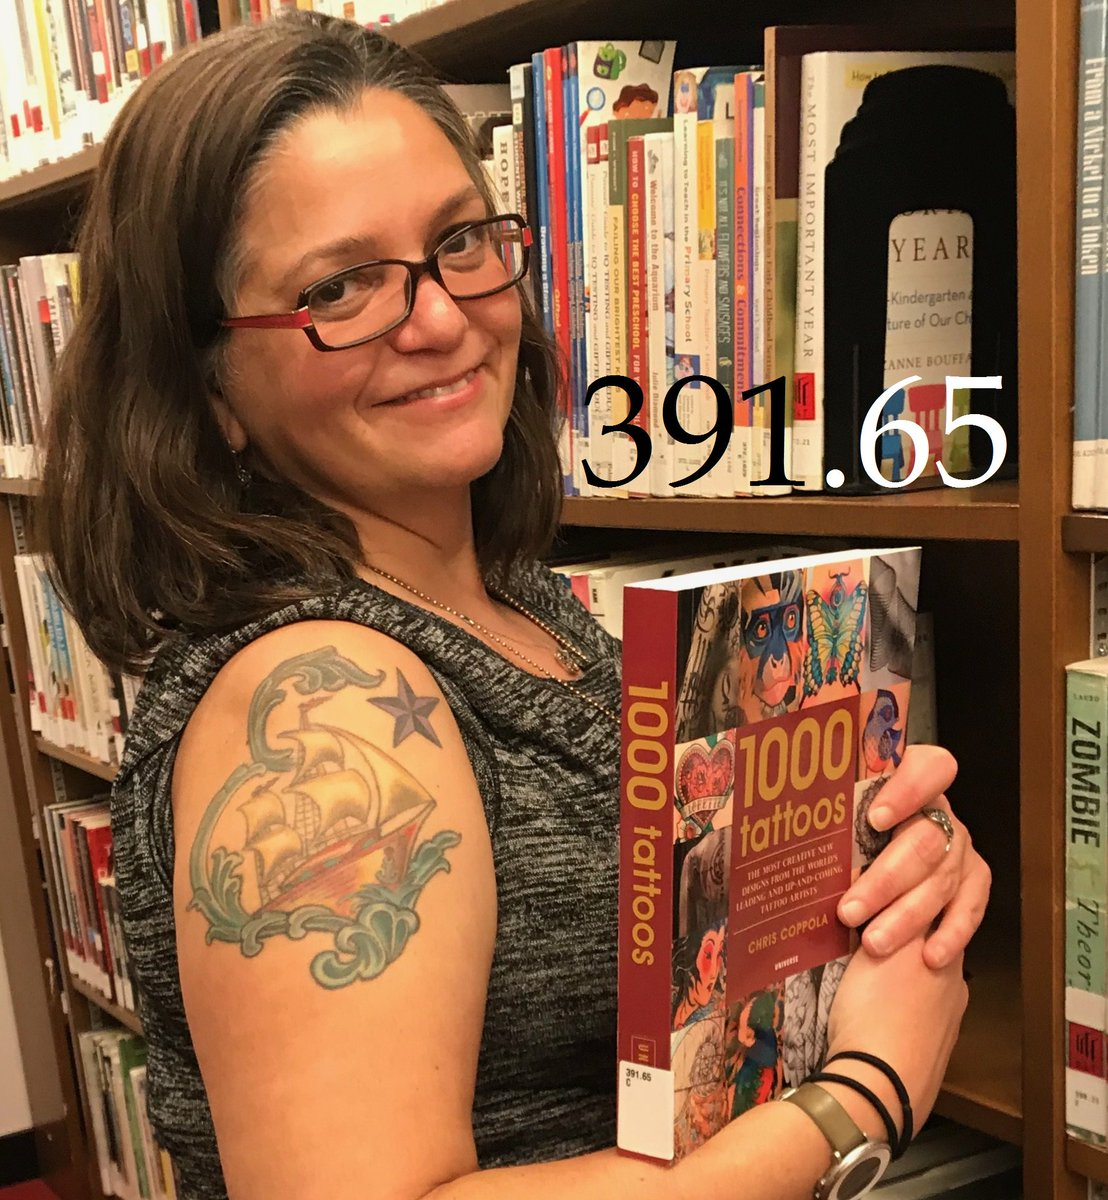 Stavros Niarchos Foundation Library Nypl On Twitter What S Your Number Melissa Likes 391 65 Body Art Tattoos Https T Co Oi7ifzjxtl Deweydecimalsystem Callnumbers Libraries Books Tattoos Bodyart Https T Co Zlt3t3rord